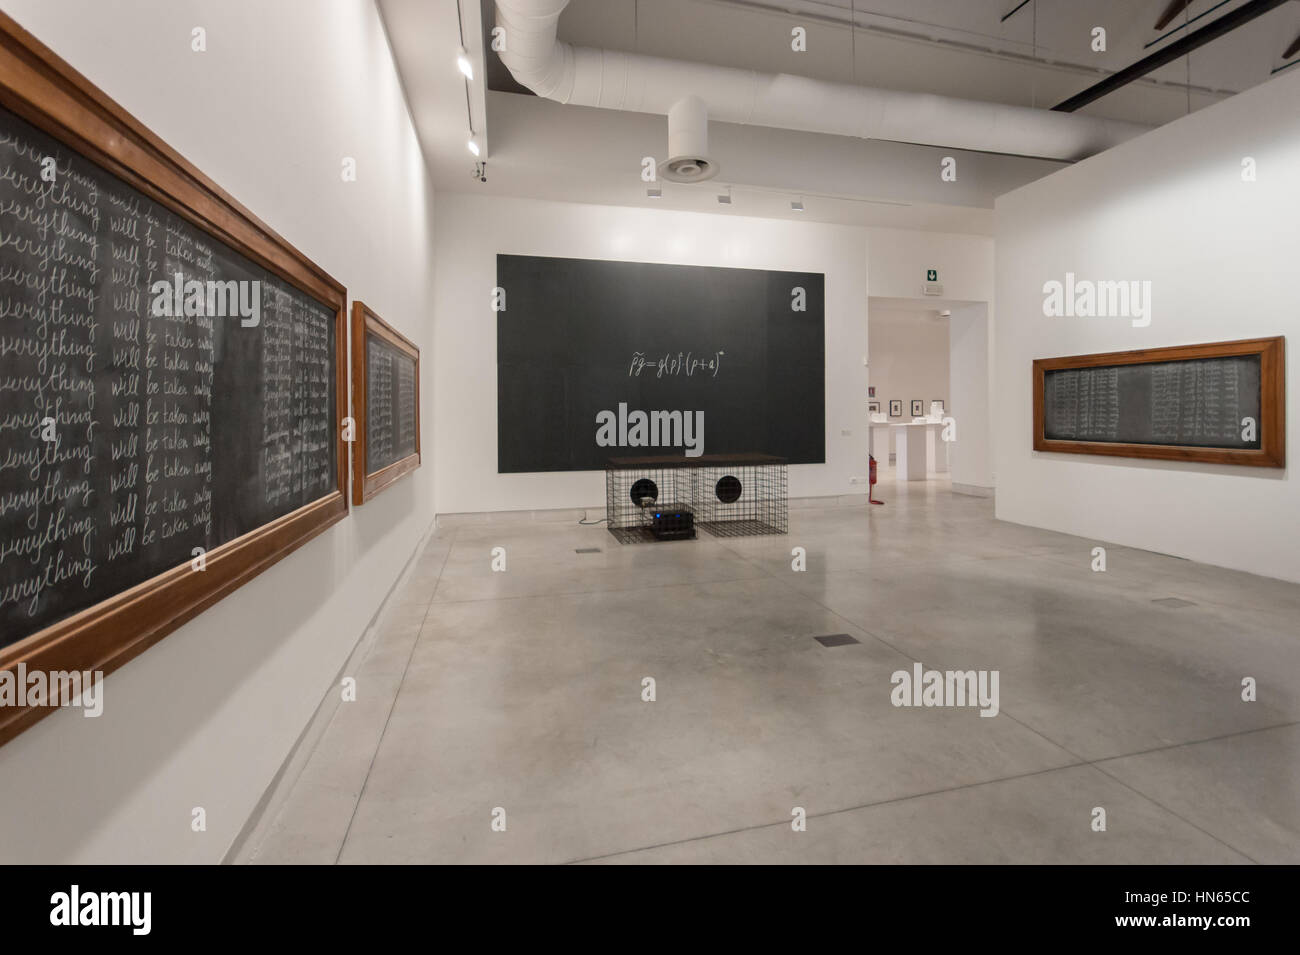 Venice Art Biennale 2015: artworks Everything #21 by Adrian Piper (sides) and I numeri malefici by Fabio Mauri (in - Stock Image